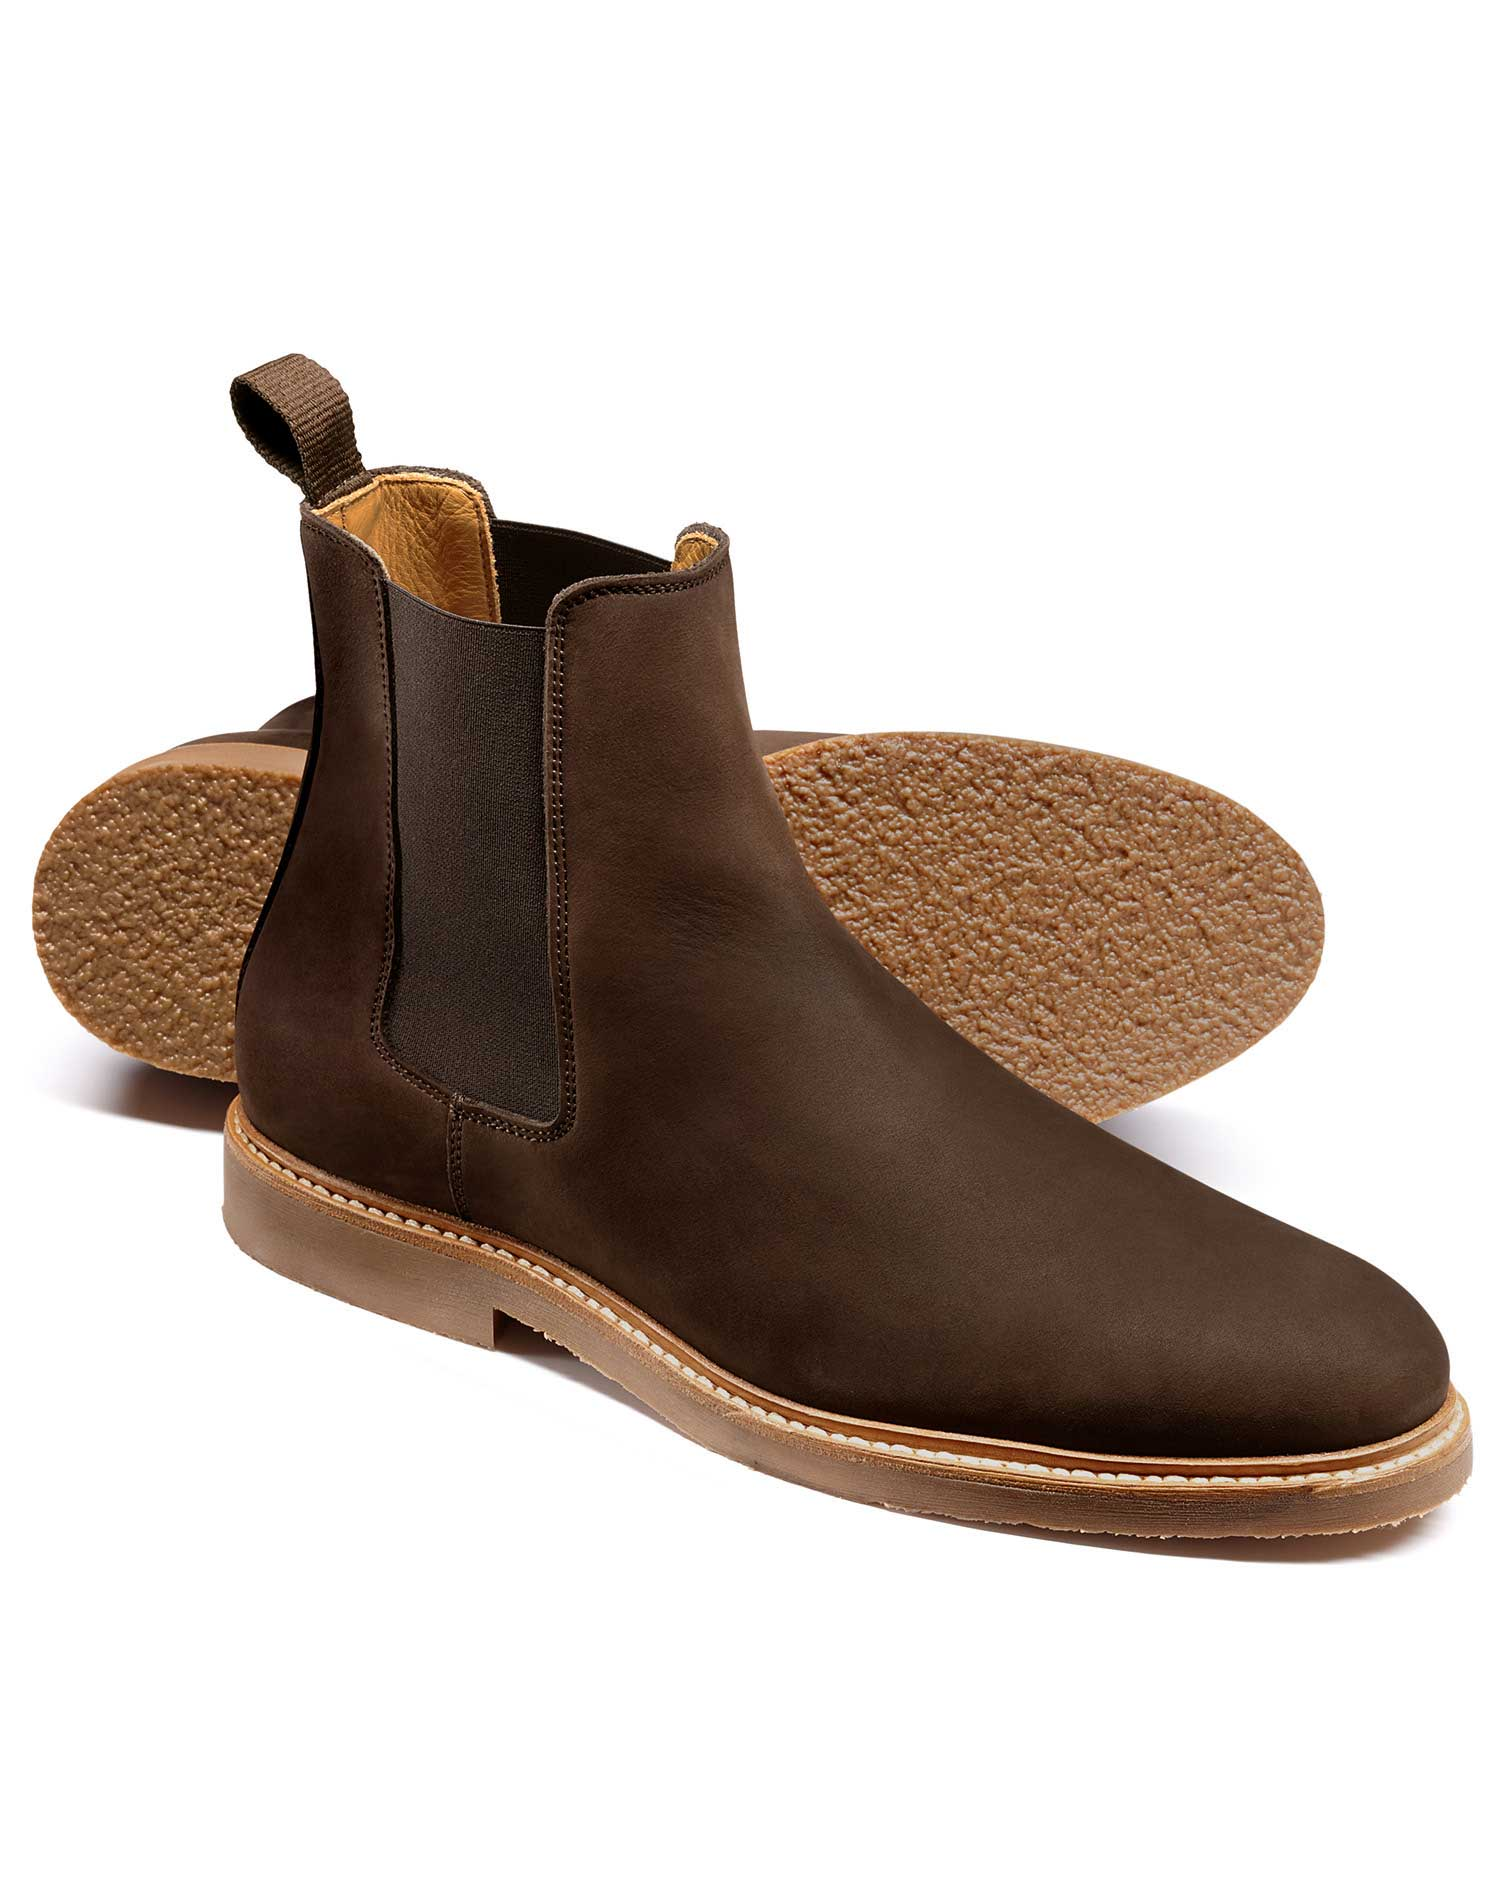 Brown Nubuck Leather Chelsea Boots Size 12 R by Charles Tyrwhitt